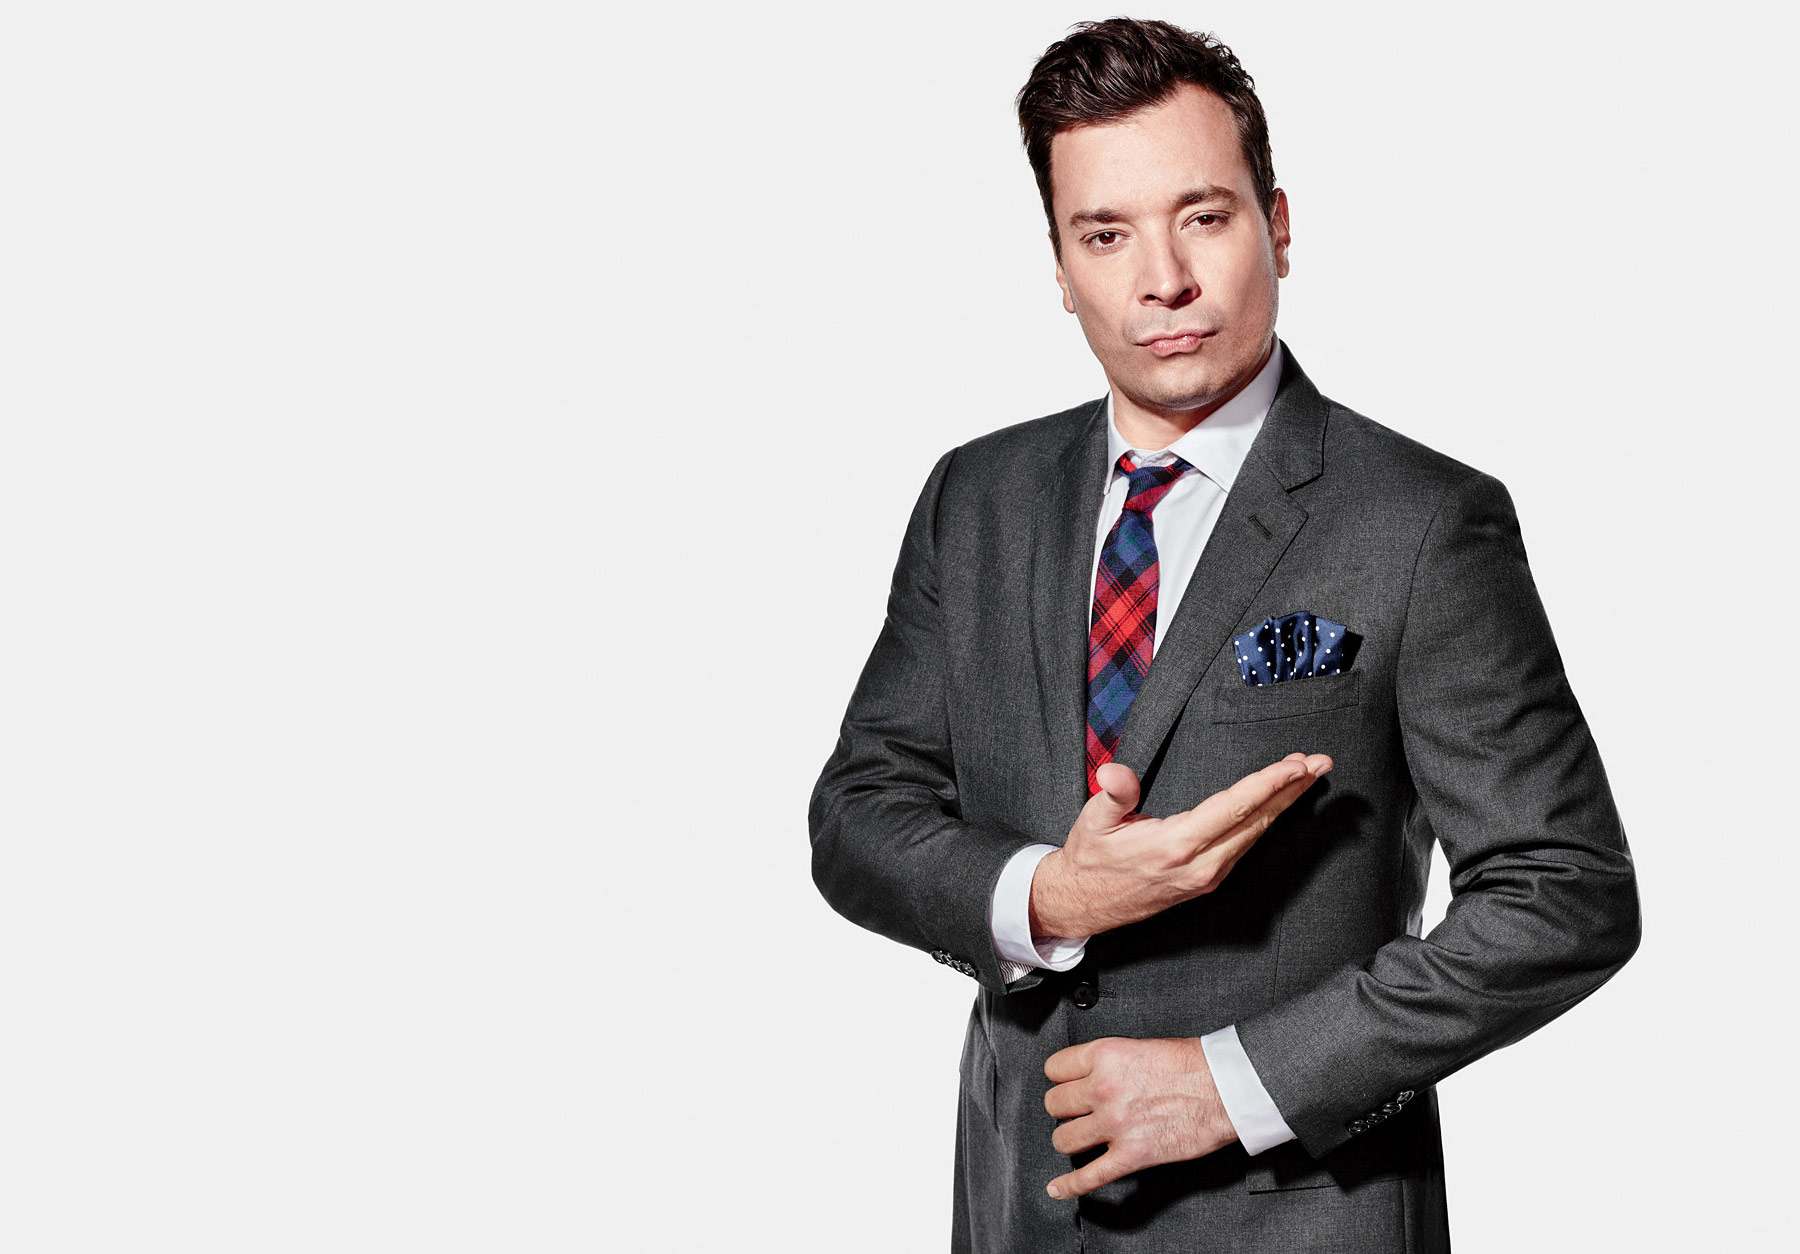 jimmy-fallon-j-crew-pocket-dial-costume-home